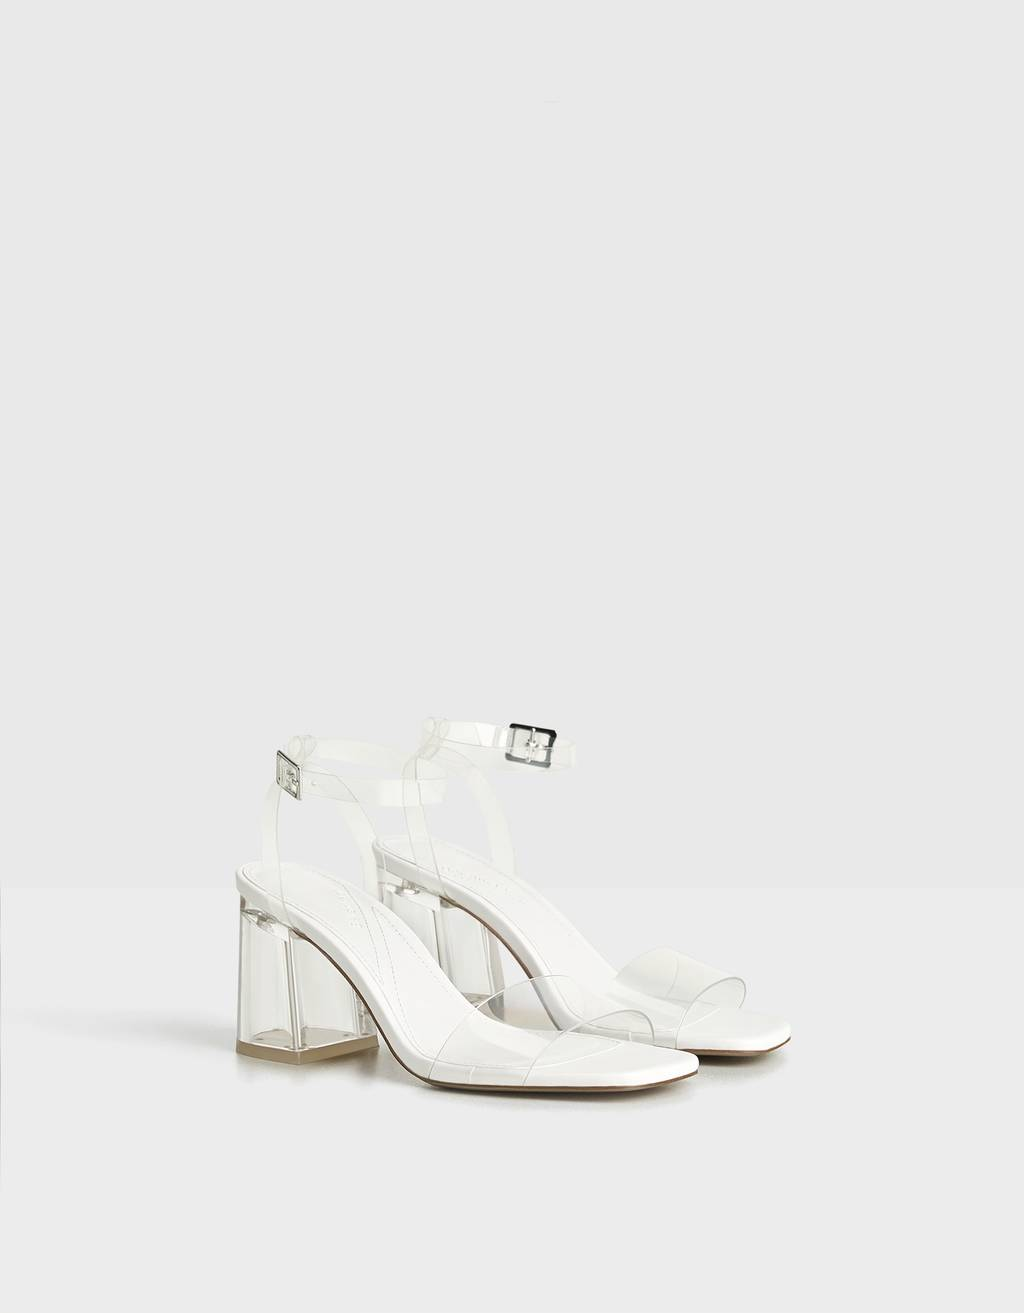 Methacrylate heeled sandals with vinyl detail.